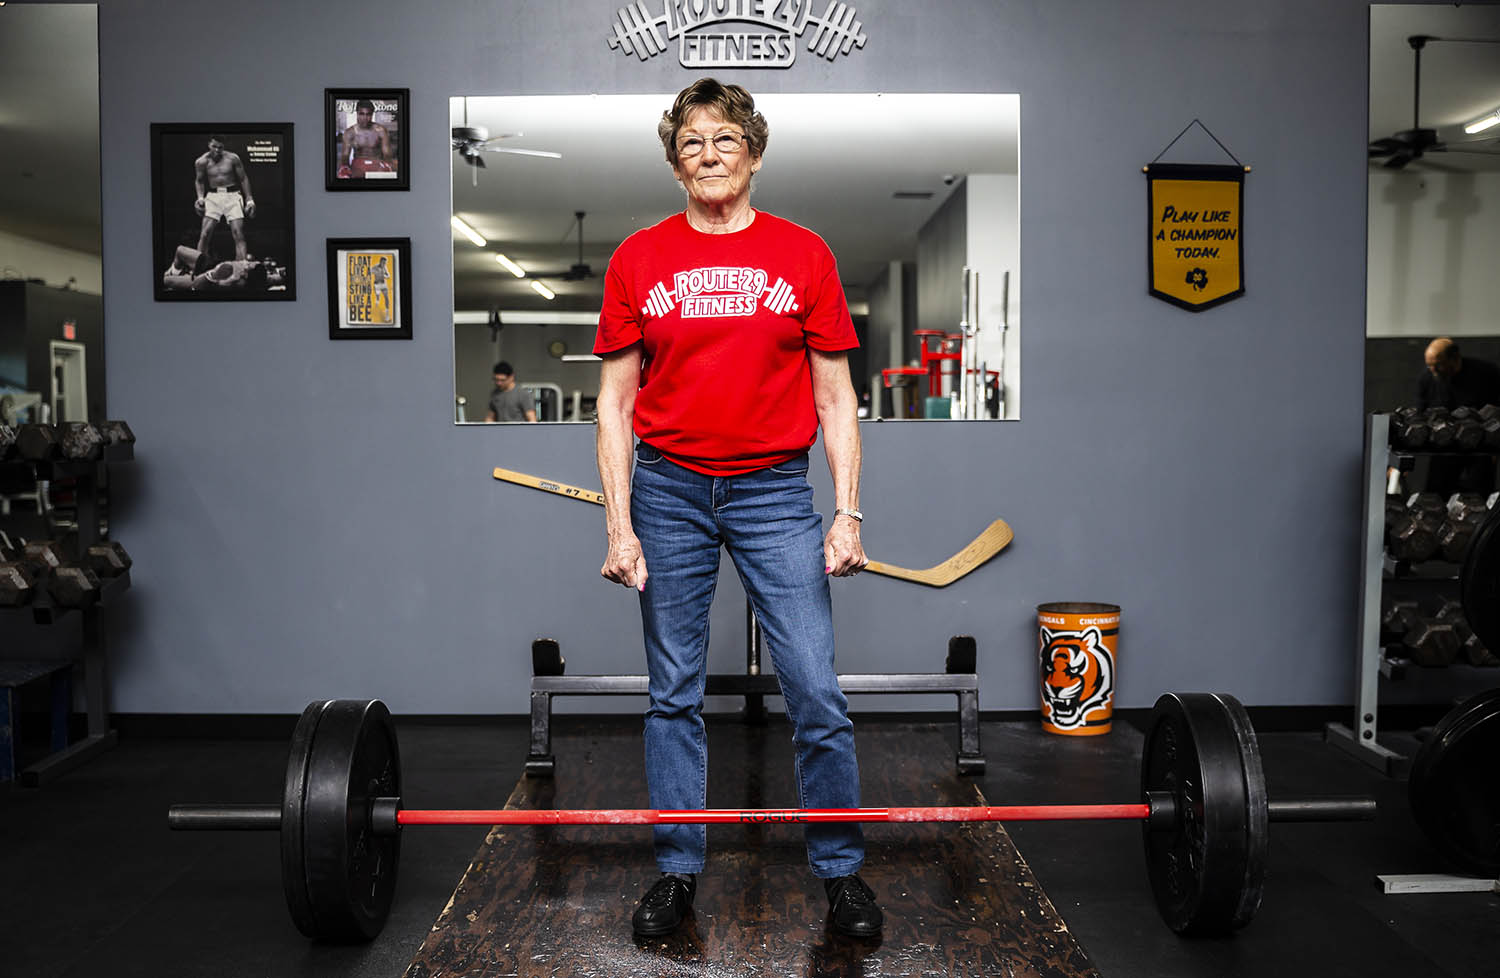 Jeanette ÒJeanÓ Barbee Dougherty, 74, is 5-feet-4 inches tall and weighs 123 pounds, but she can deadlift 245 pounds. Dougherty, who started training in 2006, has been designated raw world record holder in the single lift deadlift in her weight class and division (womenÕs master Ð 70 to 74) through the Amateur World Powerlifting Congress. [Justin L. Fowler/The State Journal-Register]